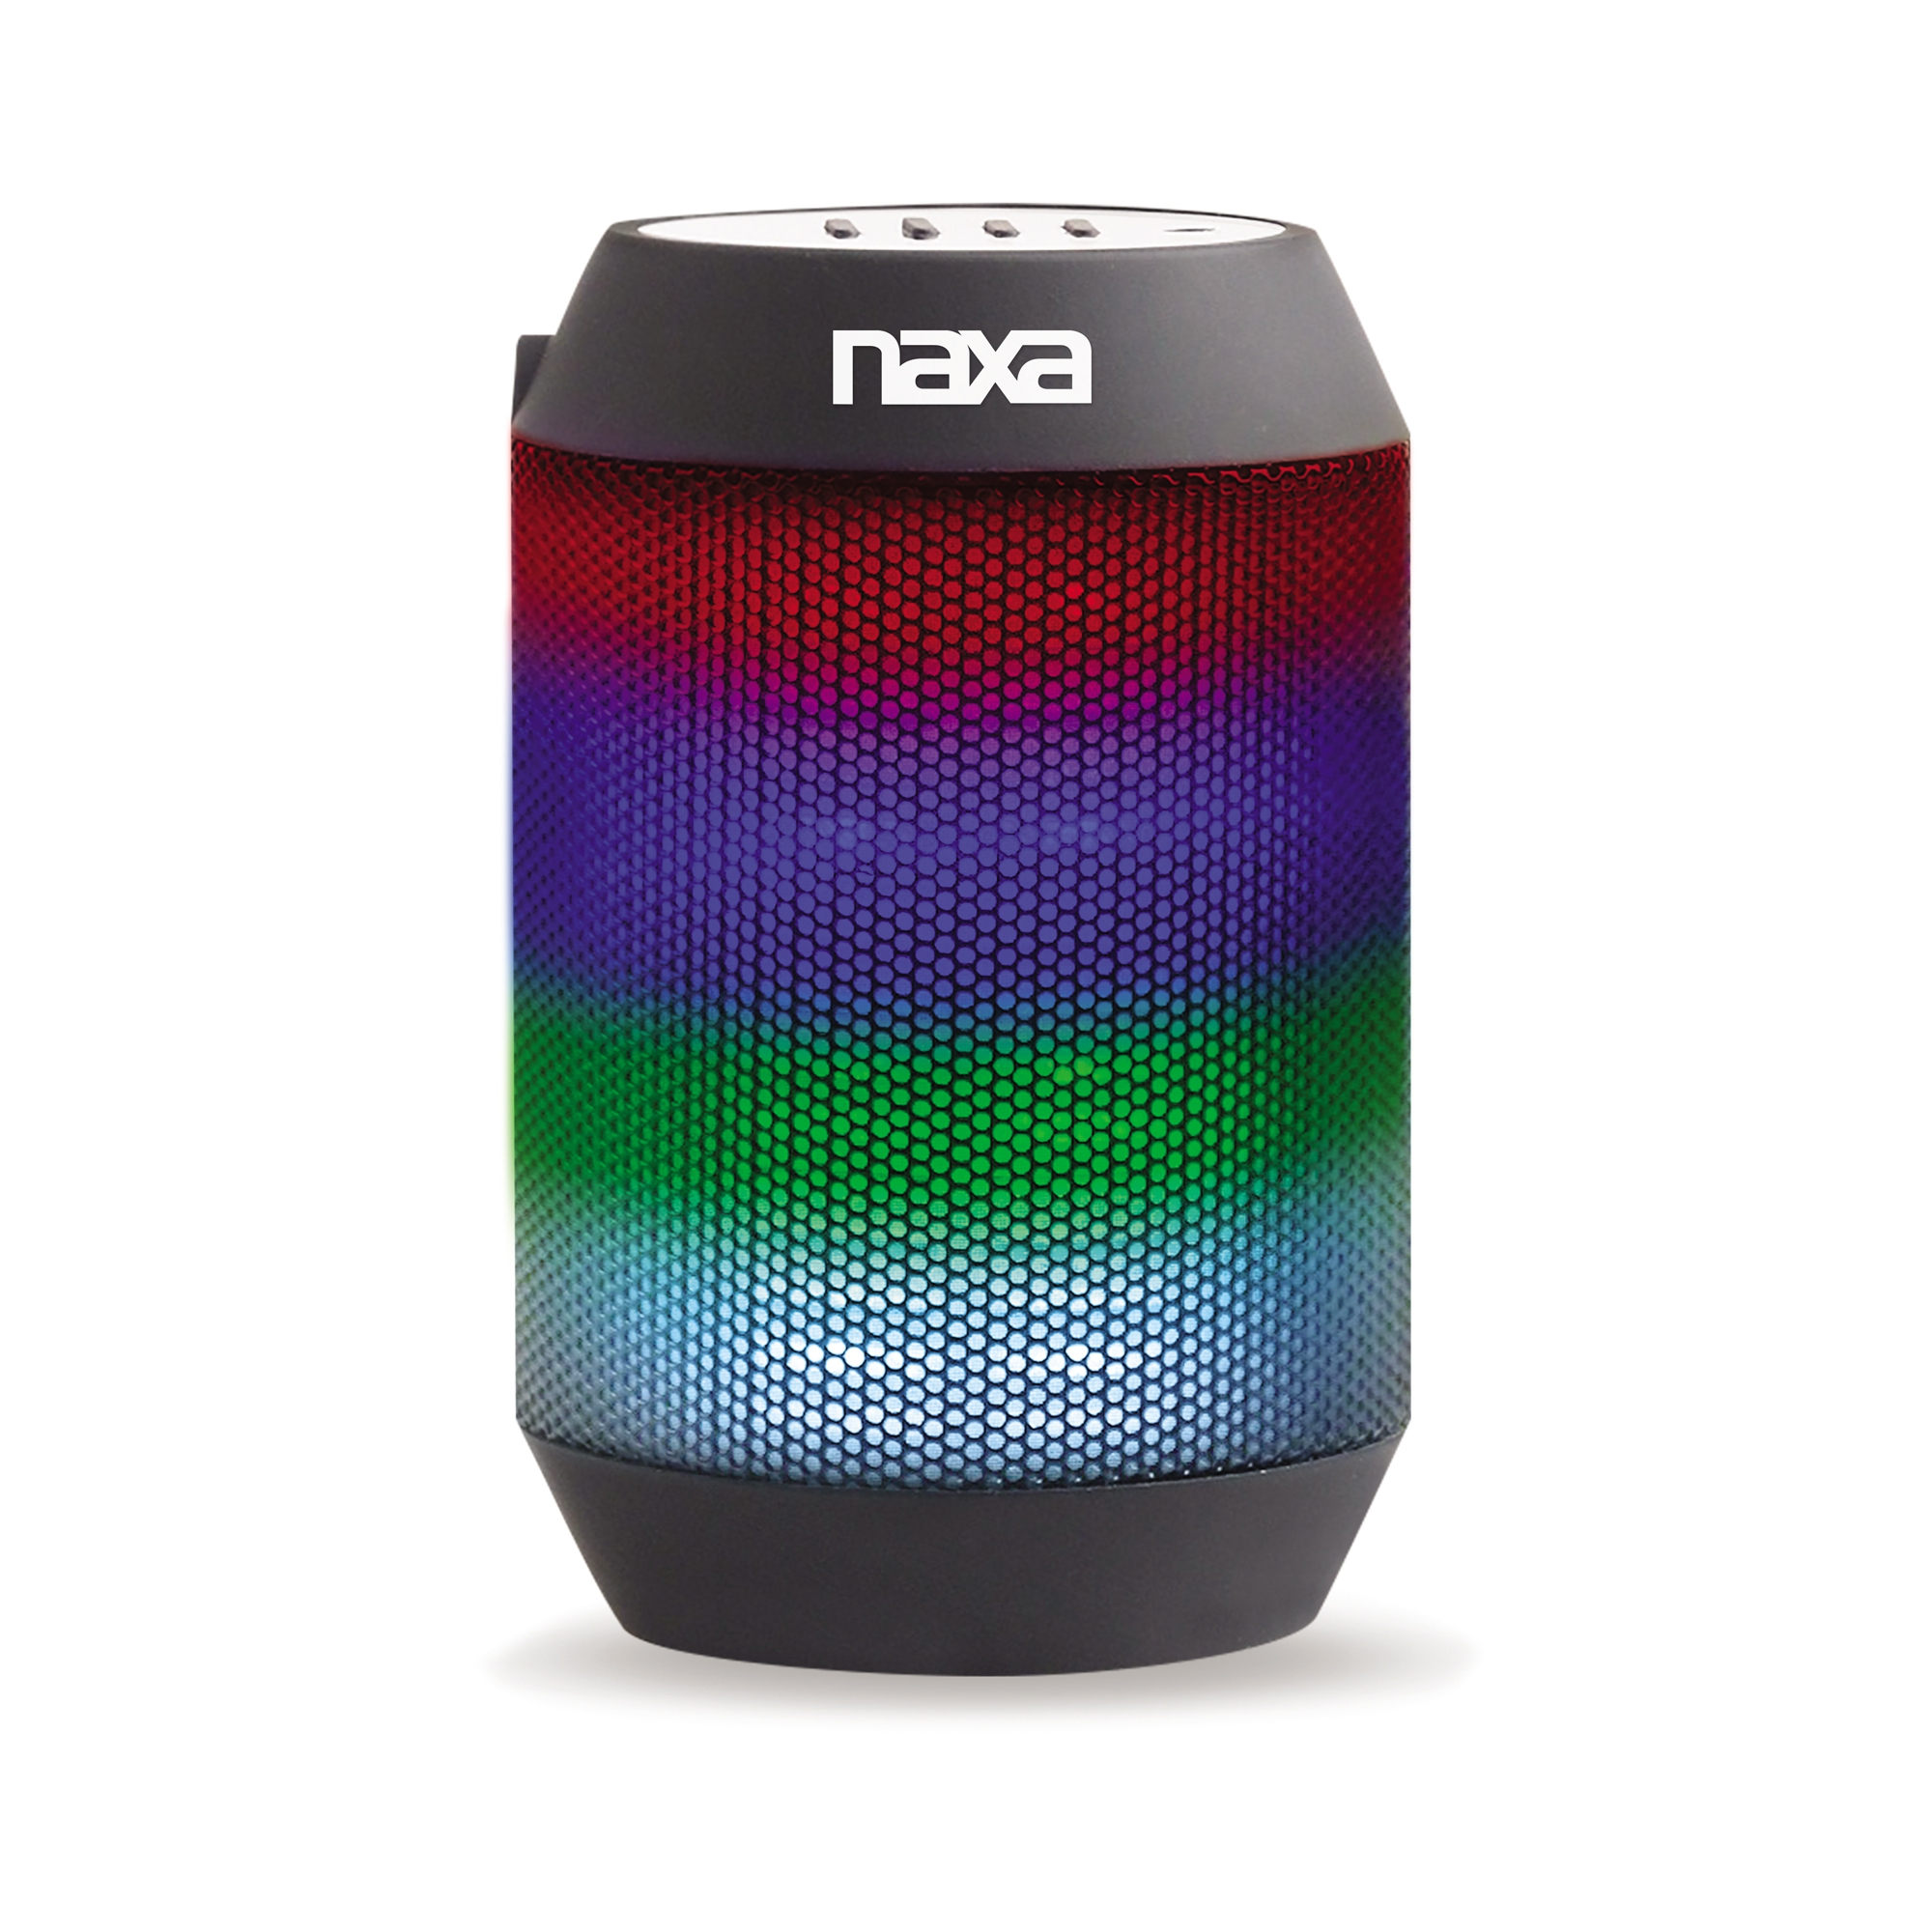 Naxa VIBE mini Bluetooth Compact Speaker with Multi-color Effects